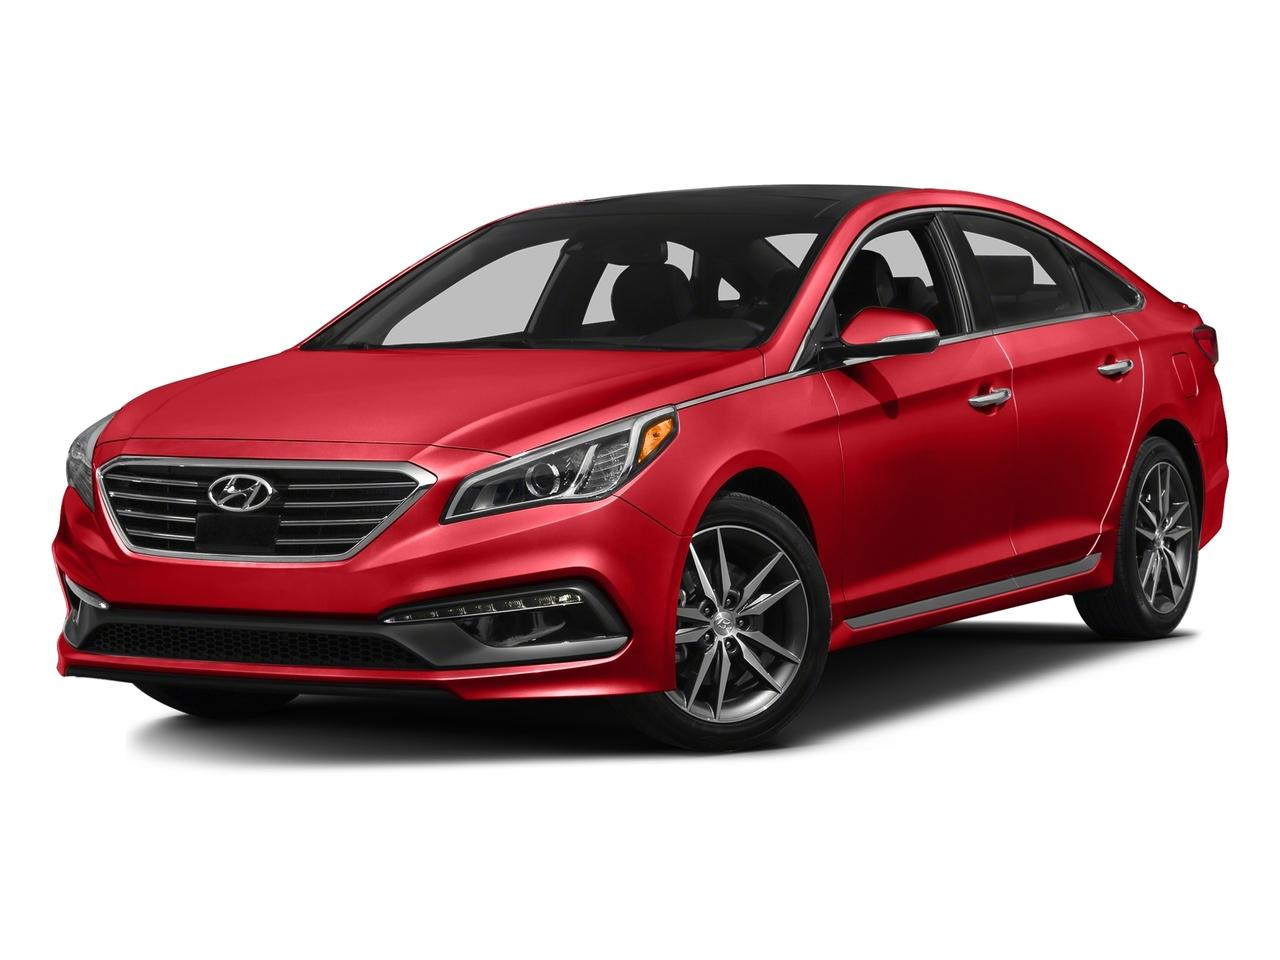 2017 Hyundai Sonata Vehicle Photo in Peoria, IL 61615